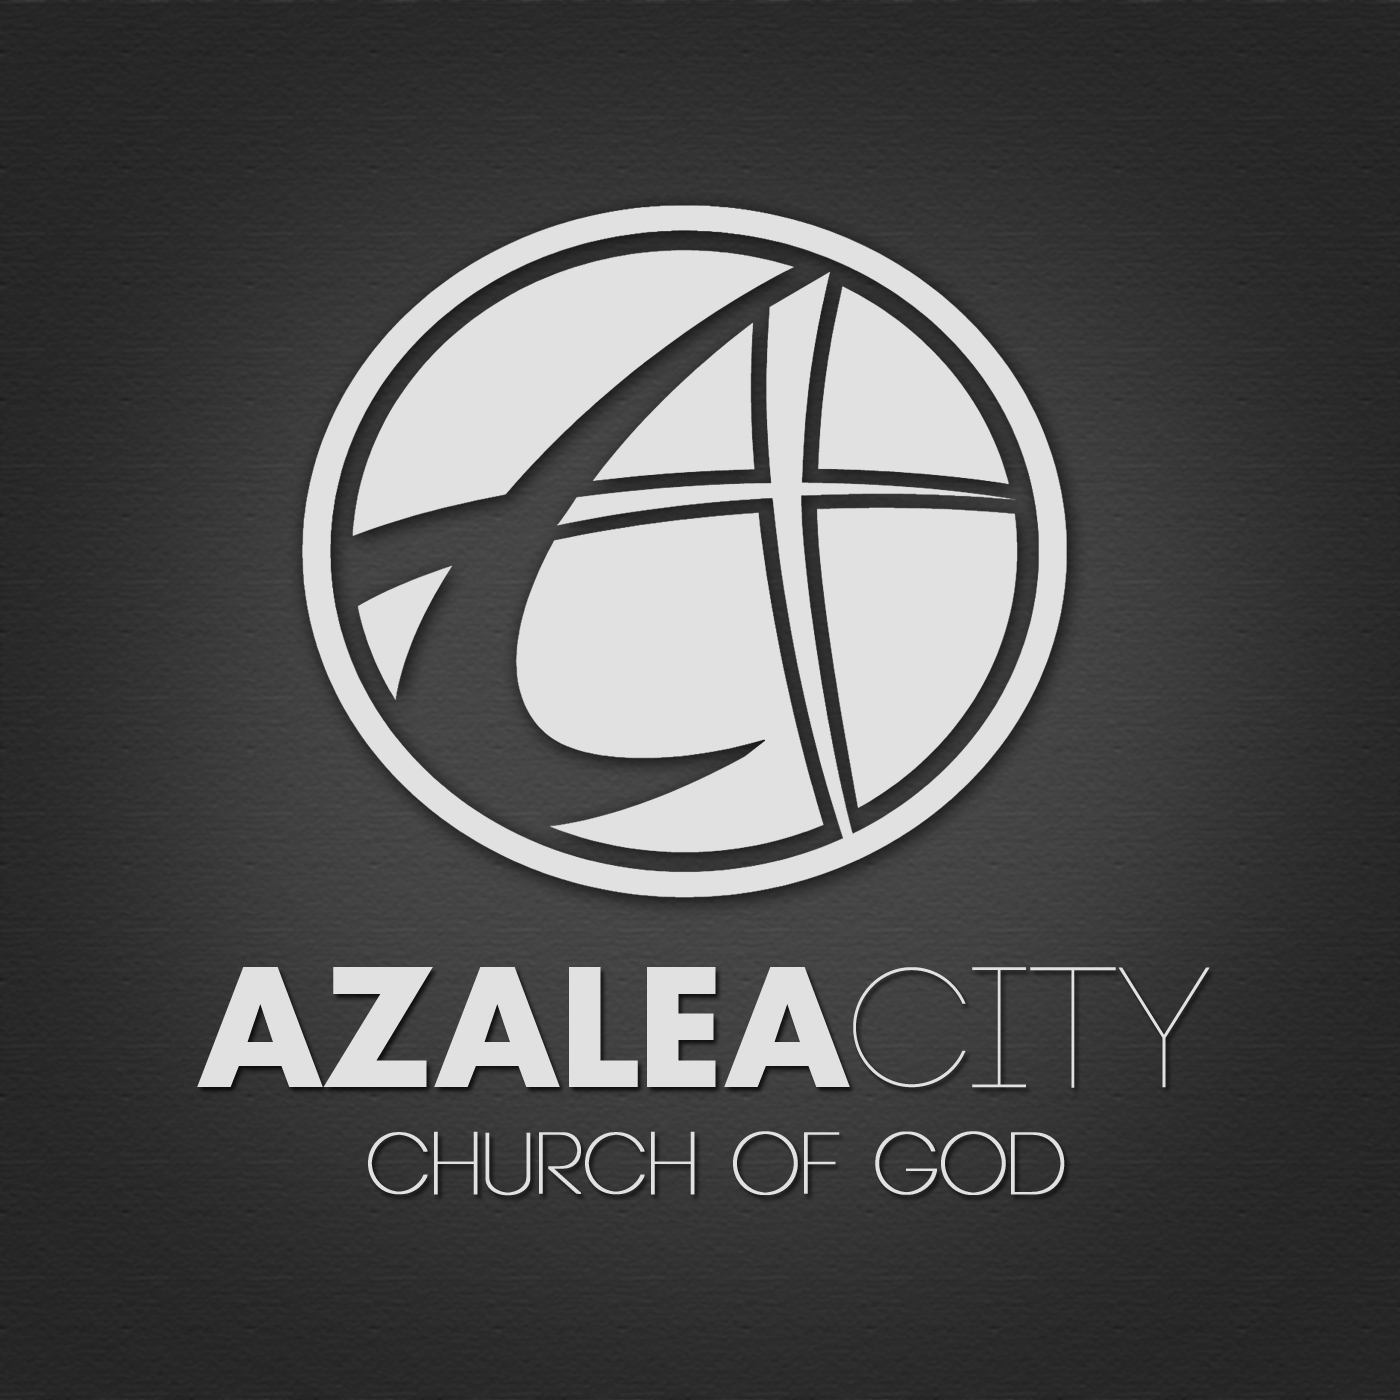 Azalea City Church of God